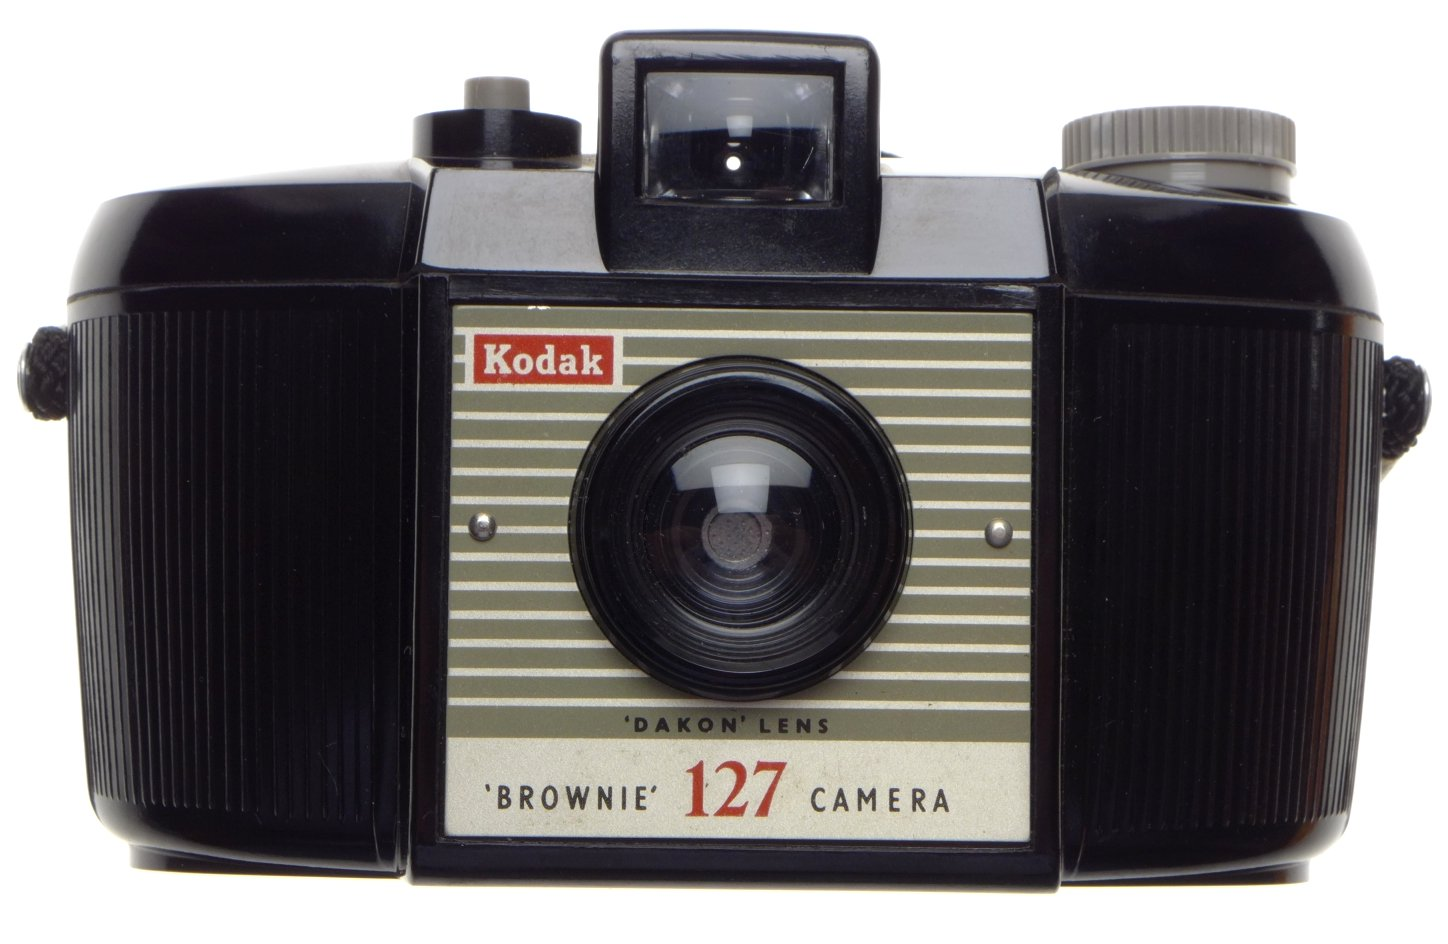 Image result for kodak brownie 127